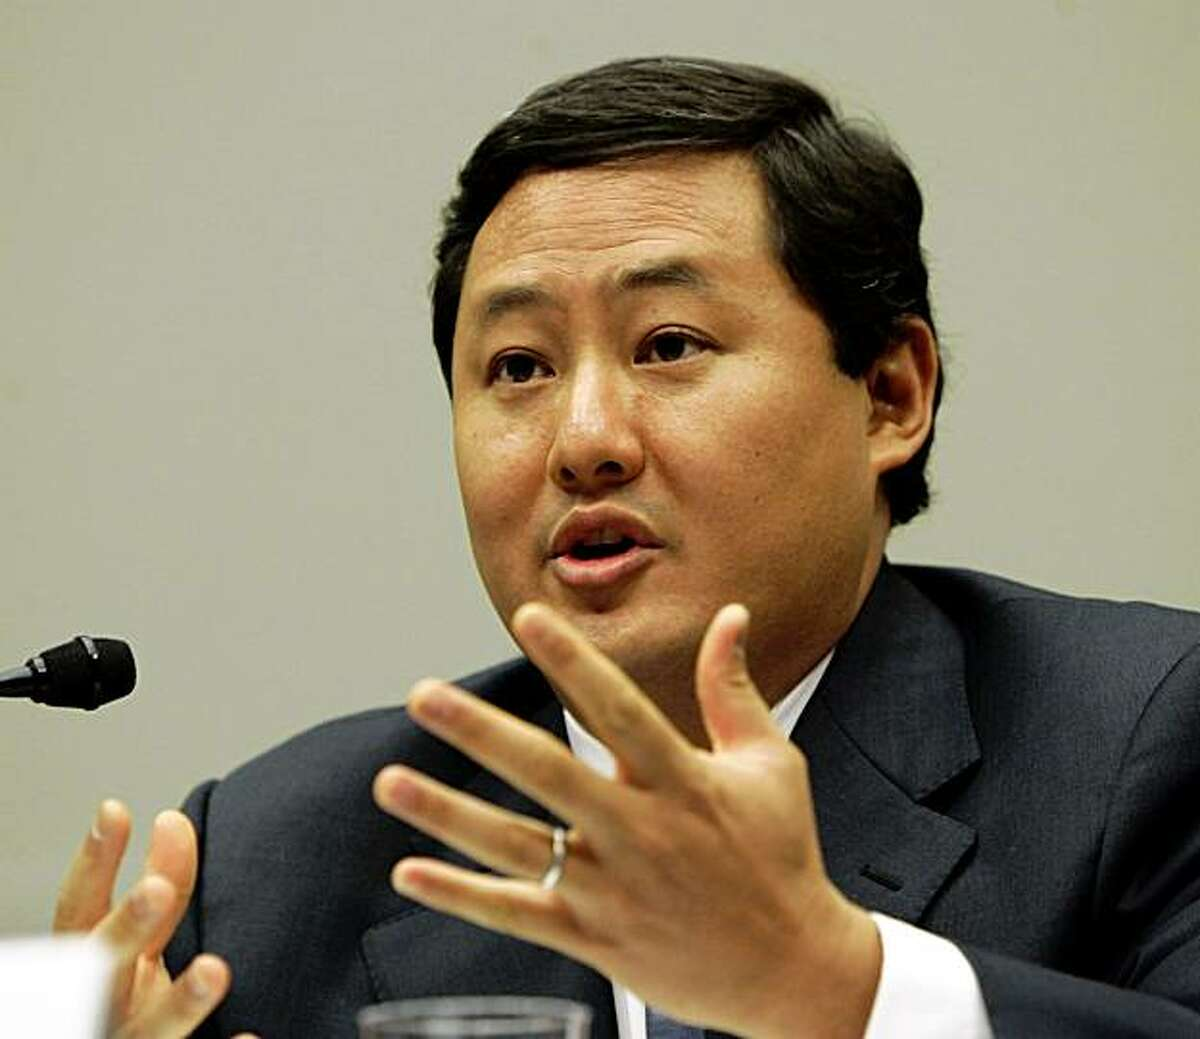 File - In this June 26, 2008 file photo John Yoo, a law professor at the University of California at Berkeley, testifies on Capitol Hill in Washington. Justice Department officials have stopped short of recommending criminal charges against Bush administration lawyers who wrote secret memos approving harsh interrogation techniques of terror suspects. (AP Photo/Susan Walsh, File)